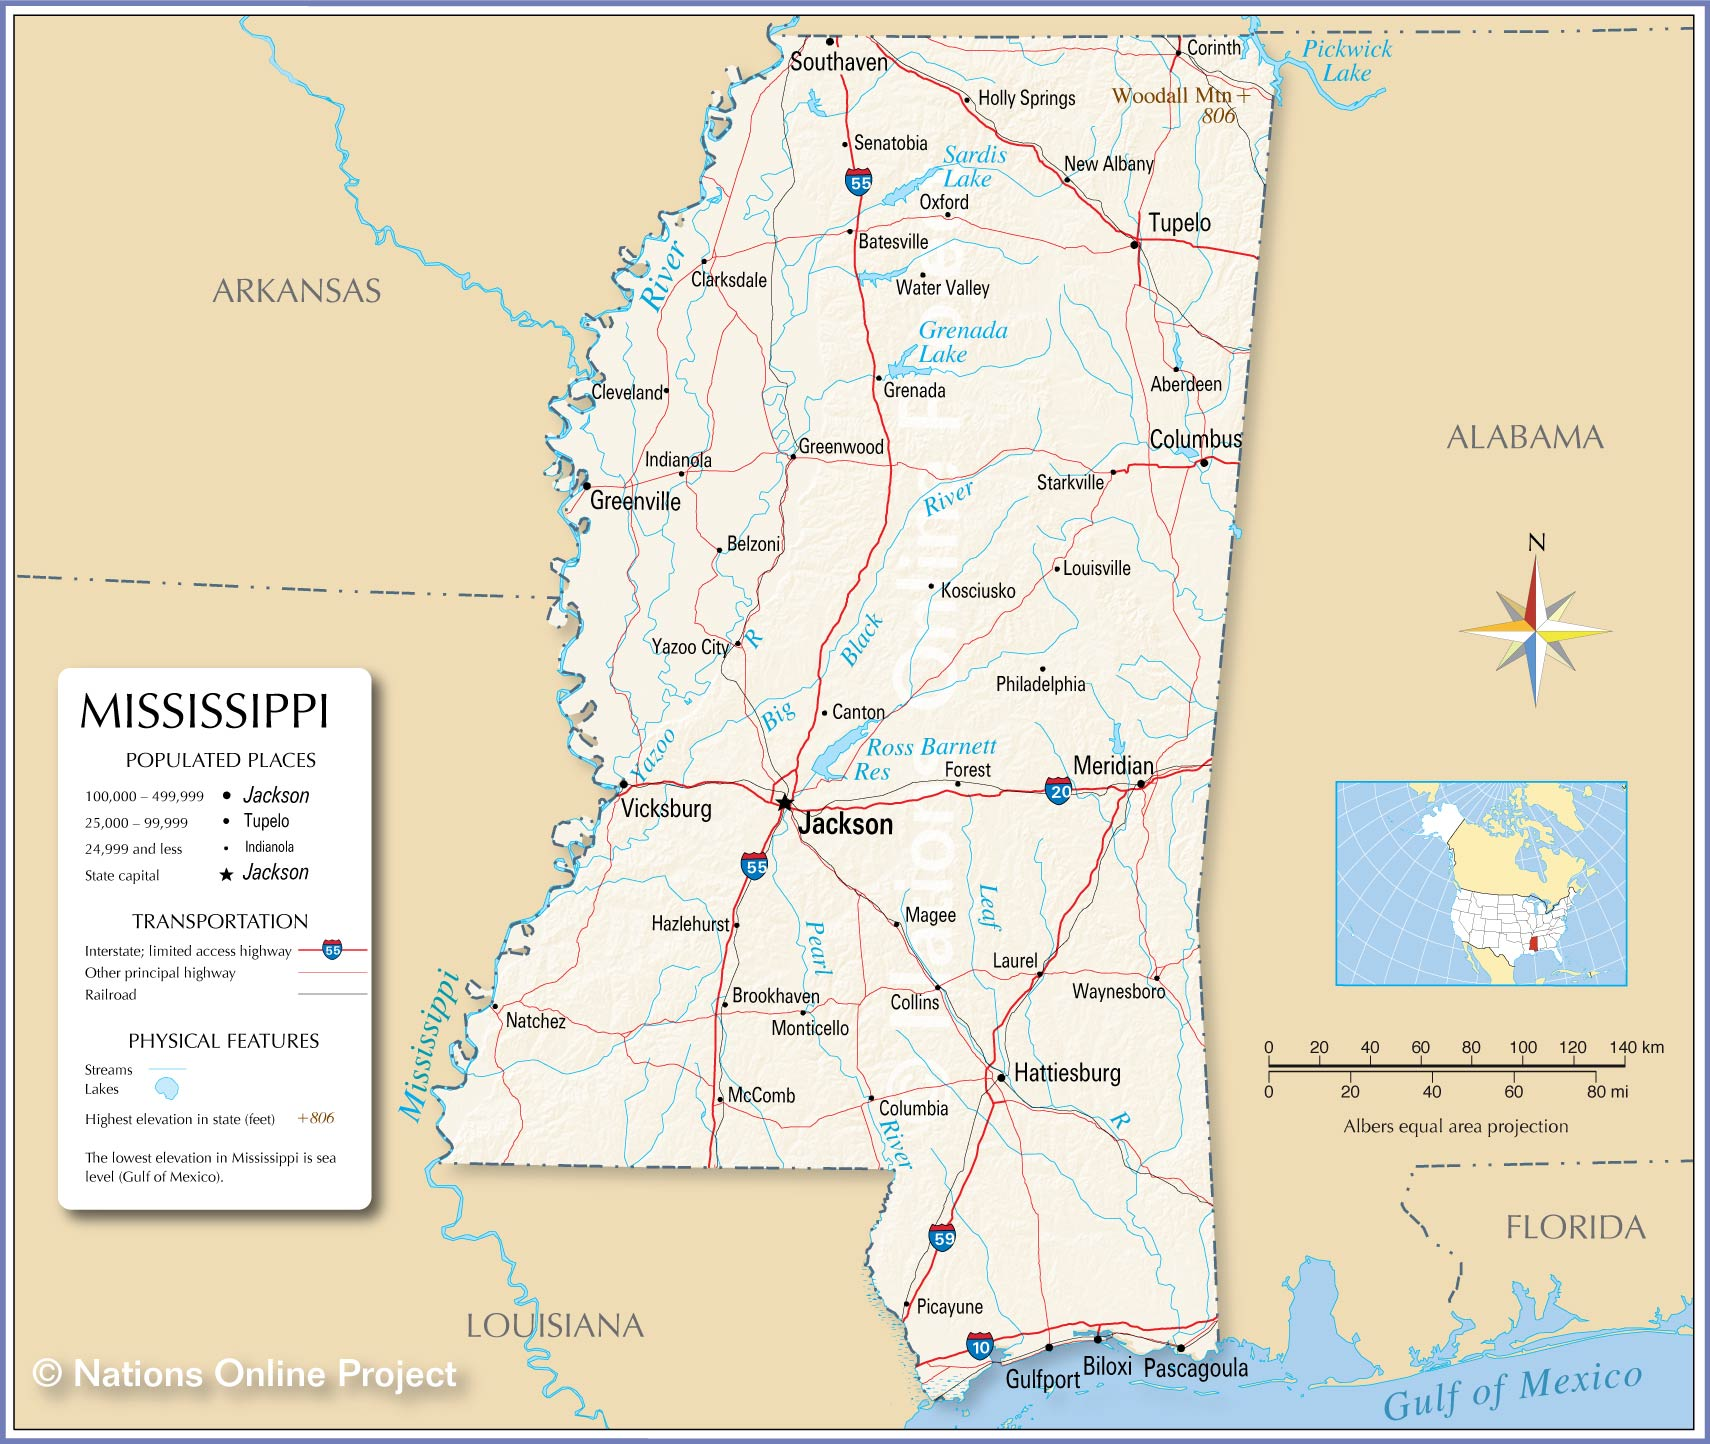 map of mississippi and surrounding states Maps United States Map Mississippi map of mississippi and surrounding states